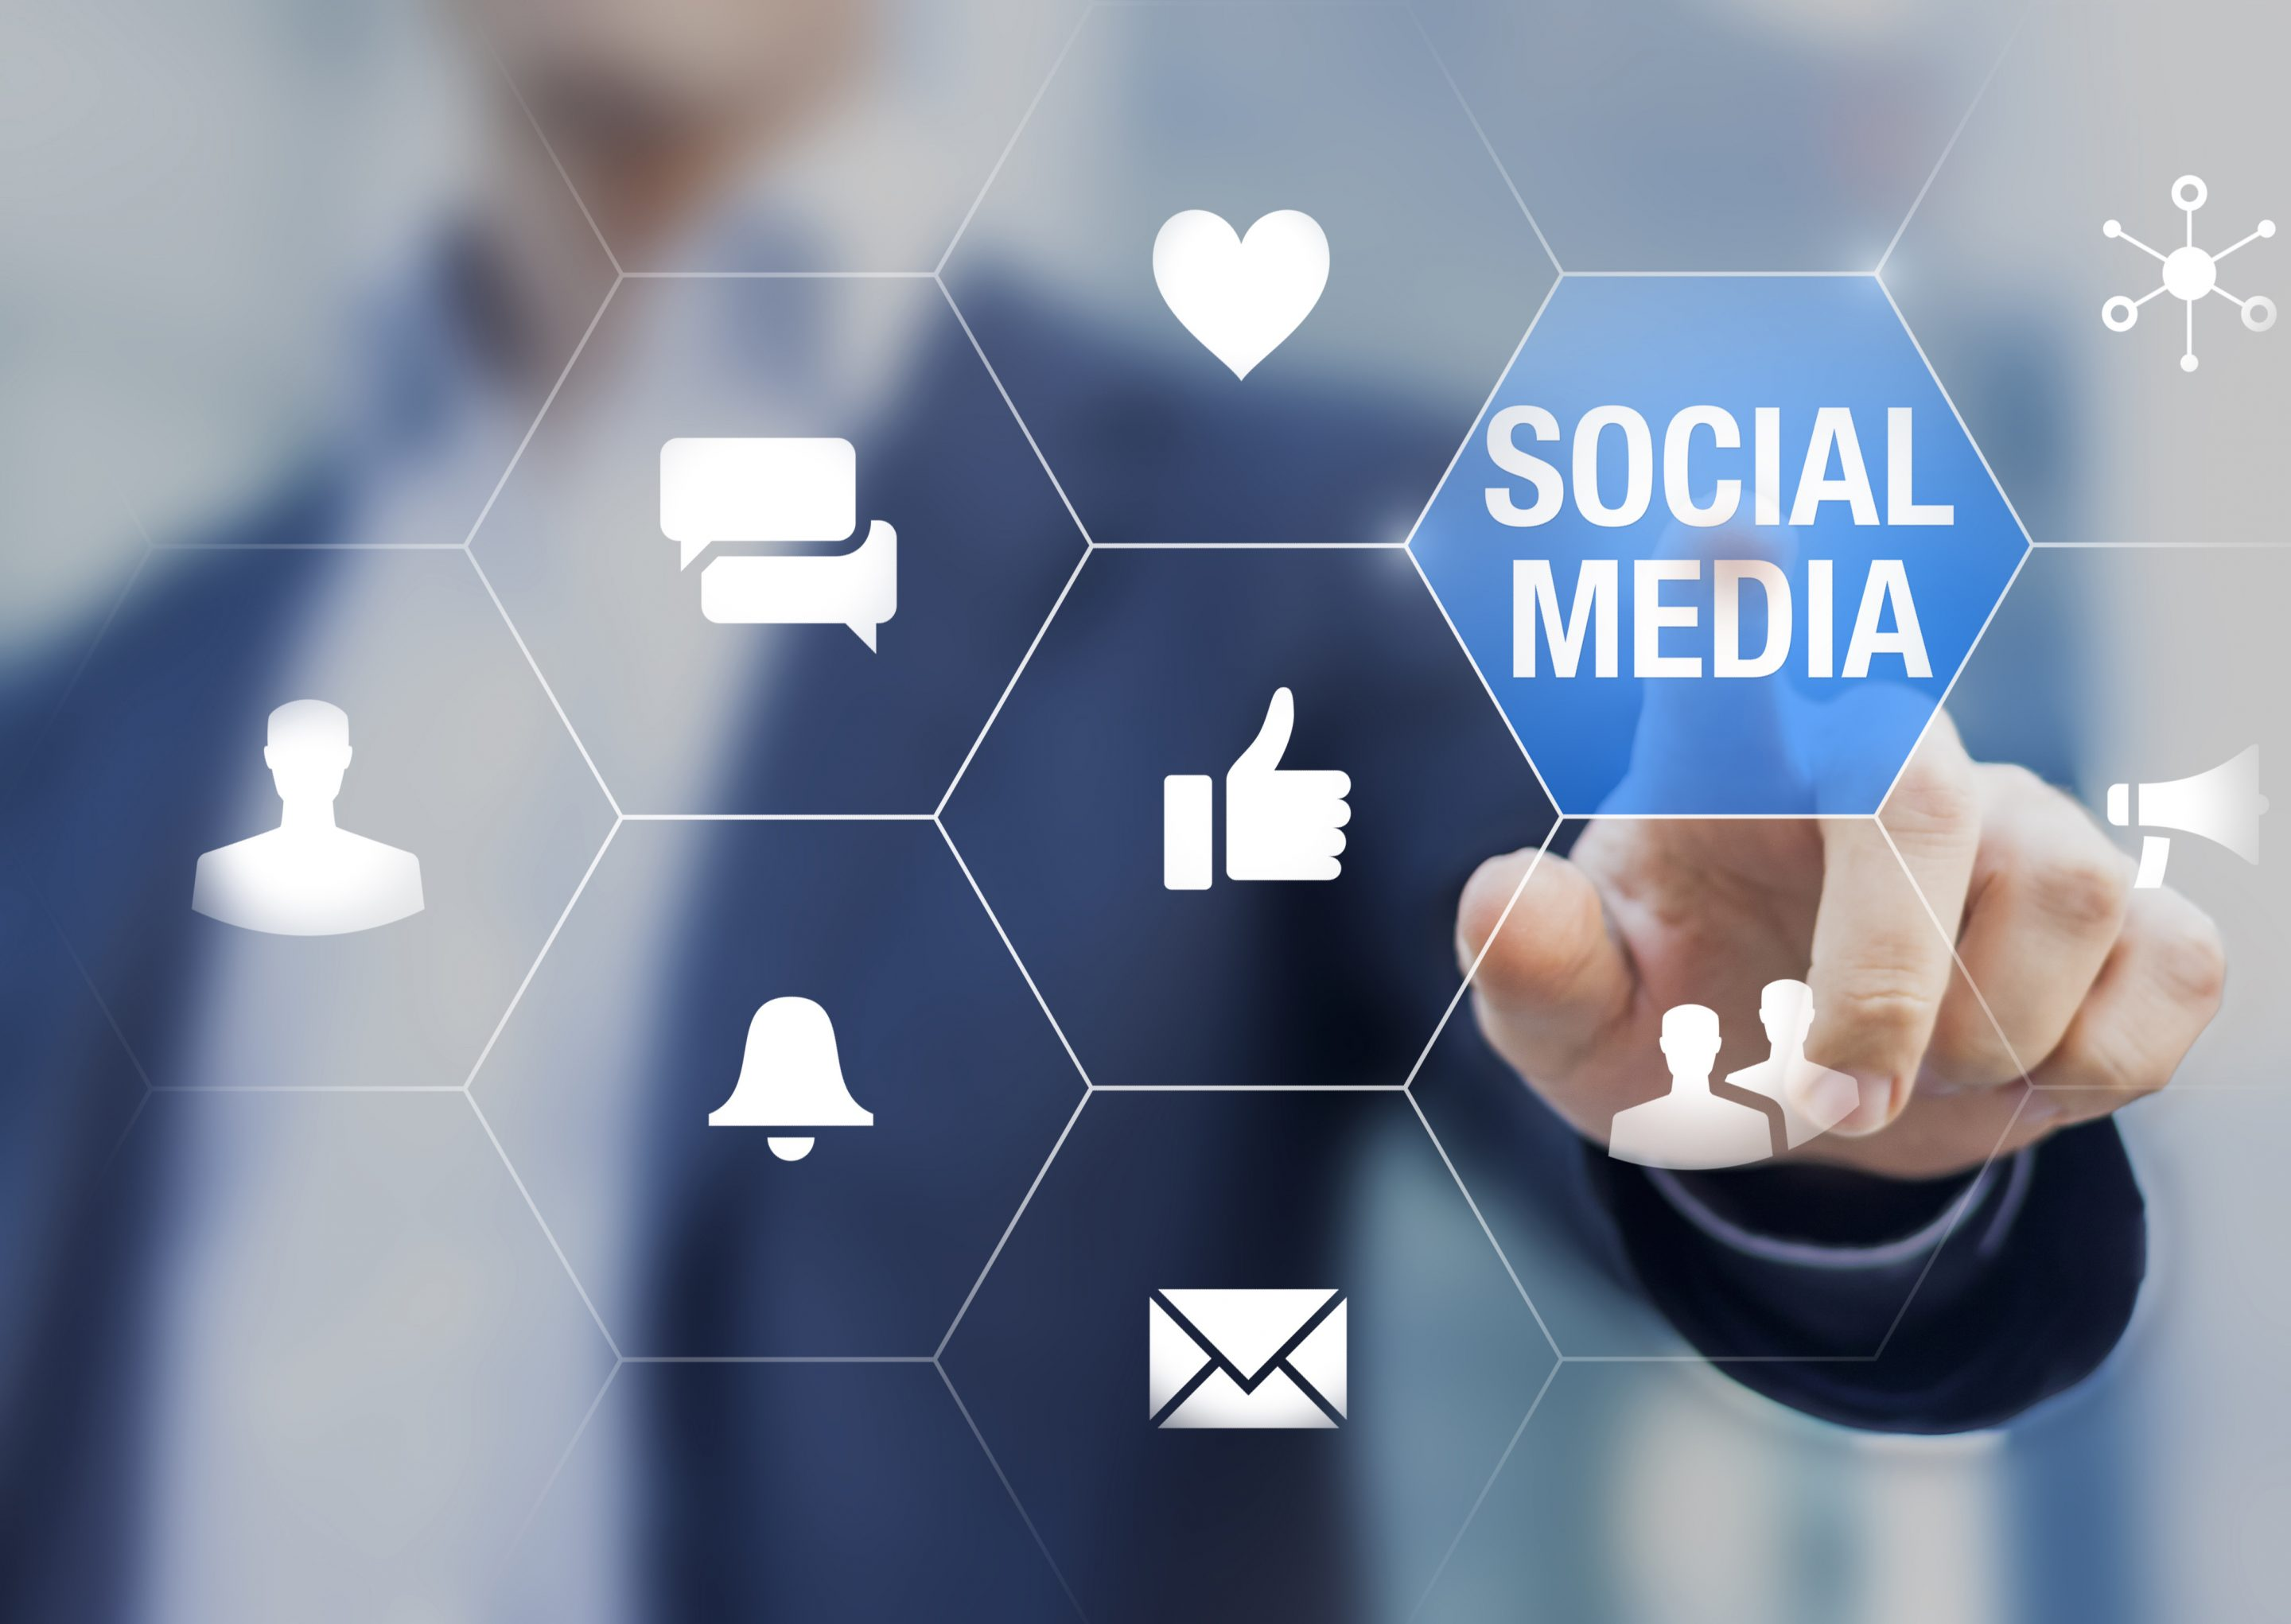 What Are The Social Media Basics?